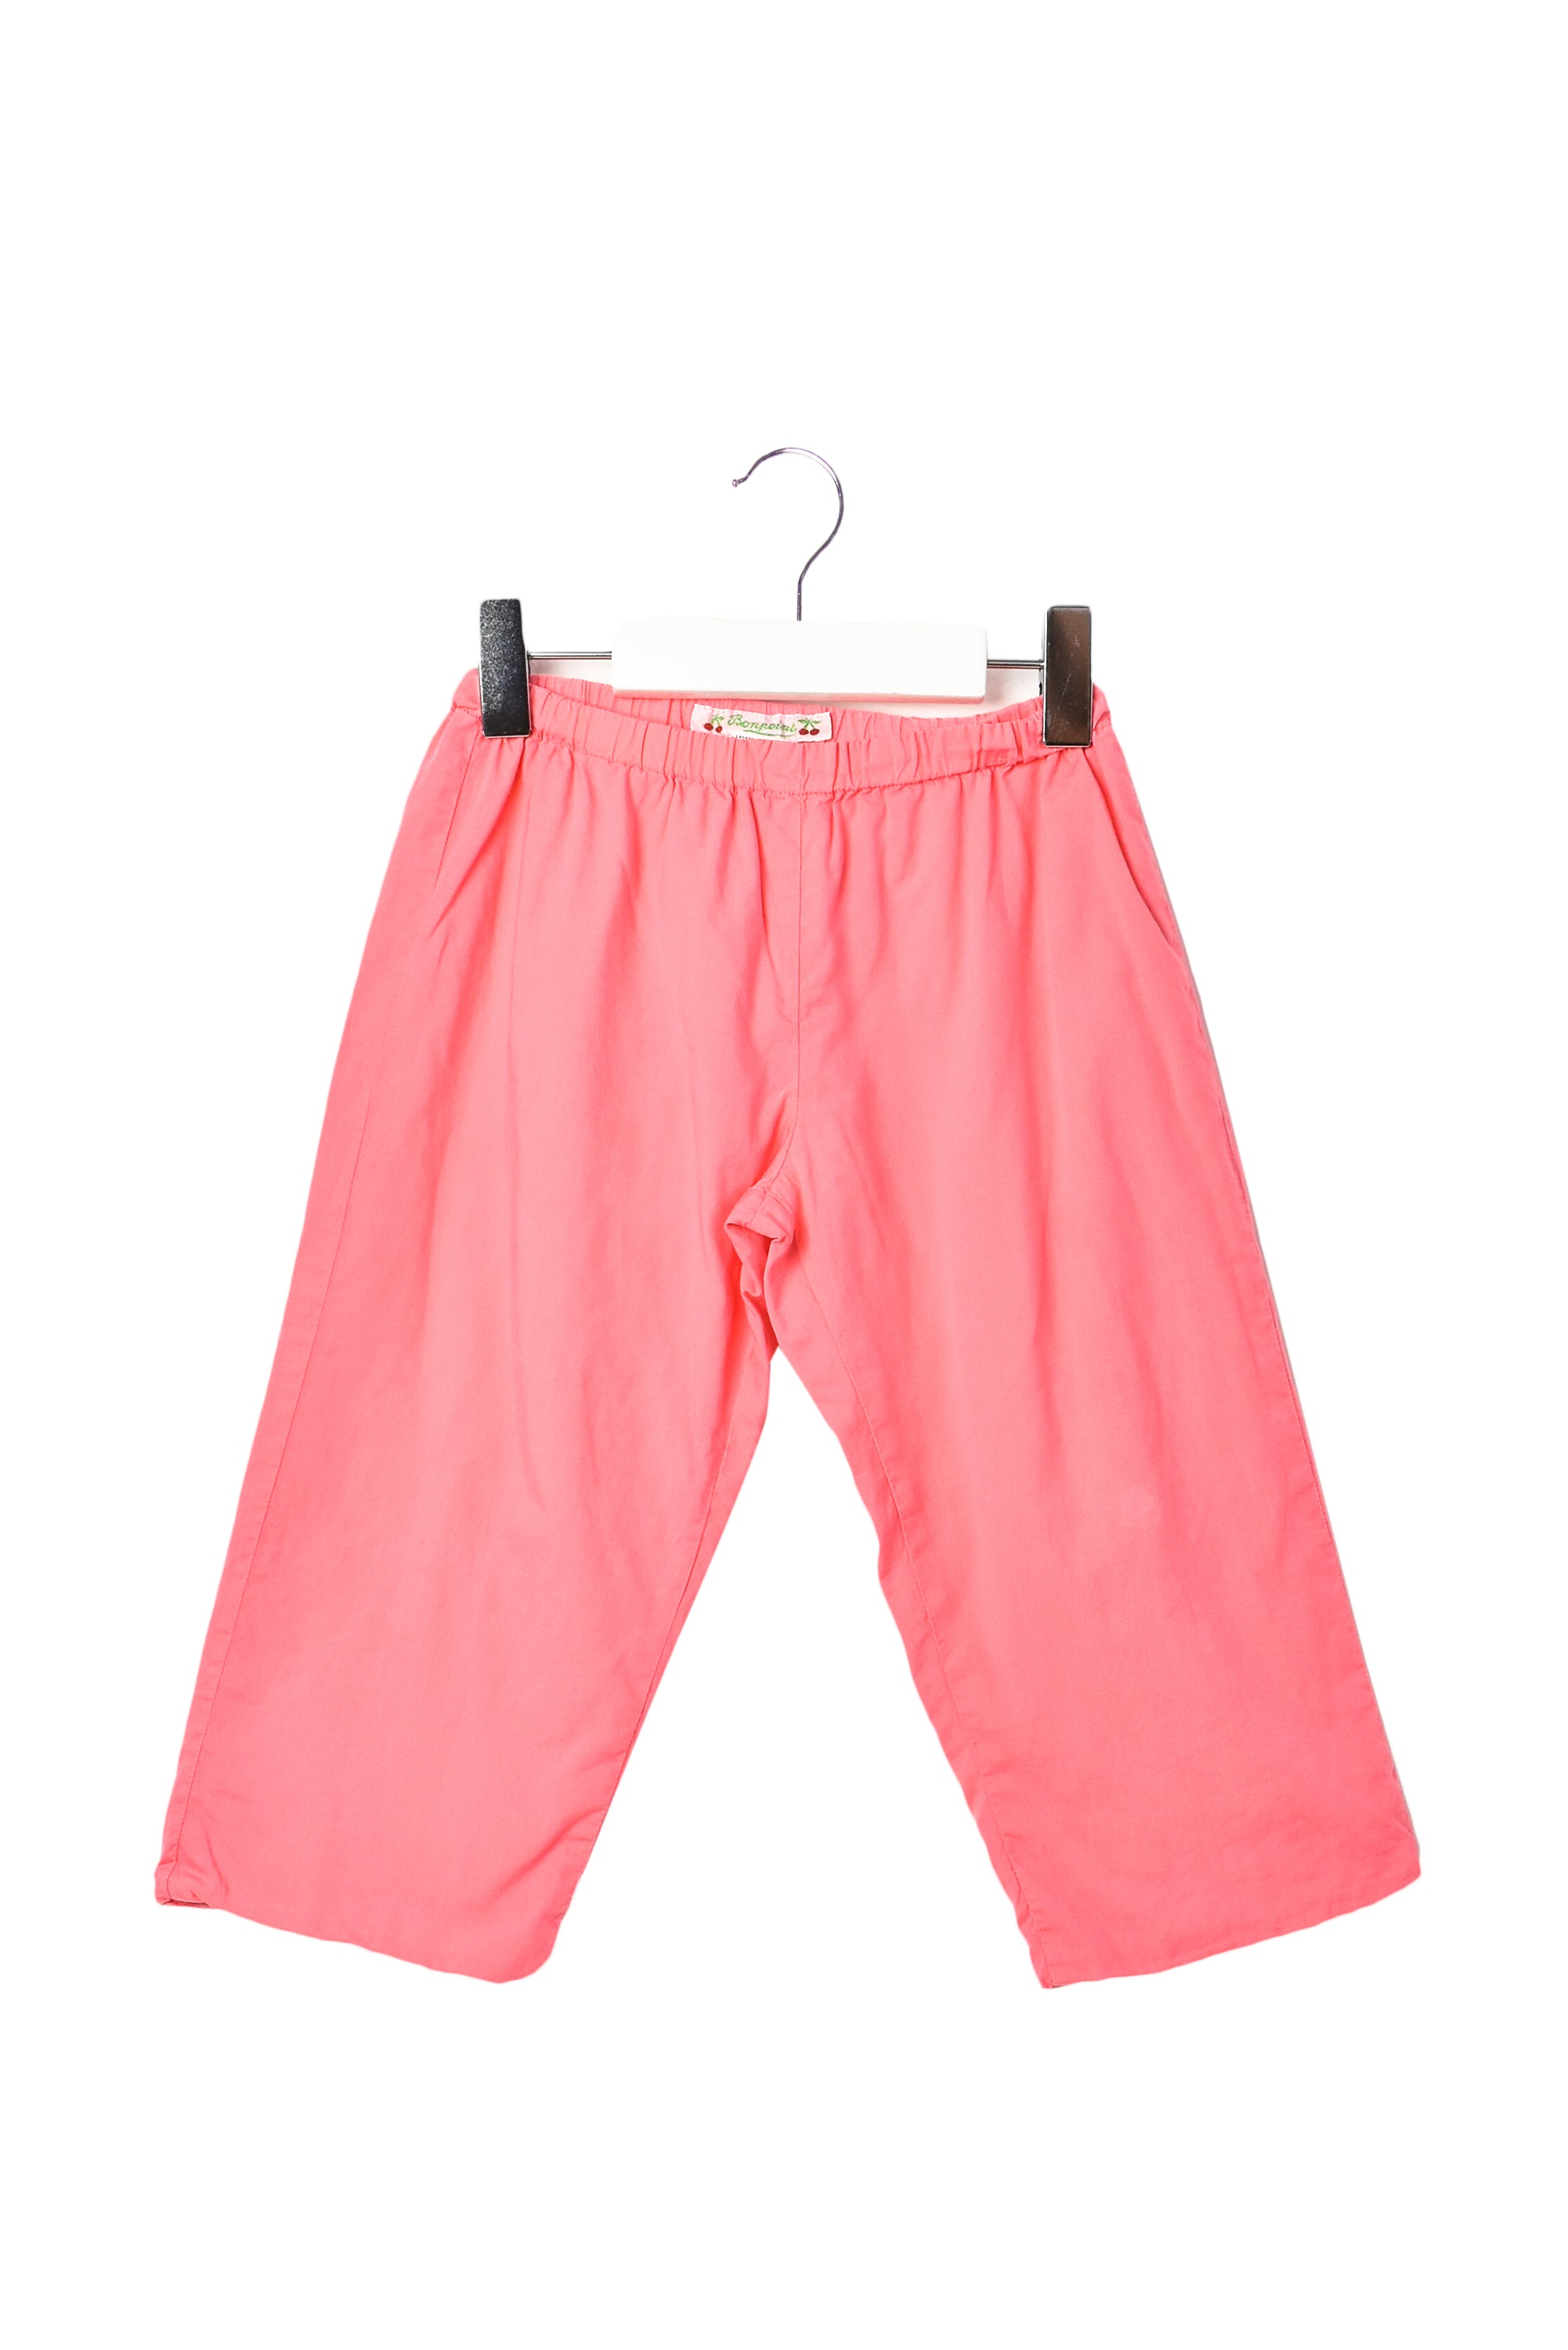 10006268 Bonpoint Kids~Pants 2T at Retykle